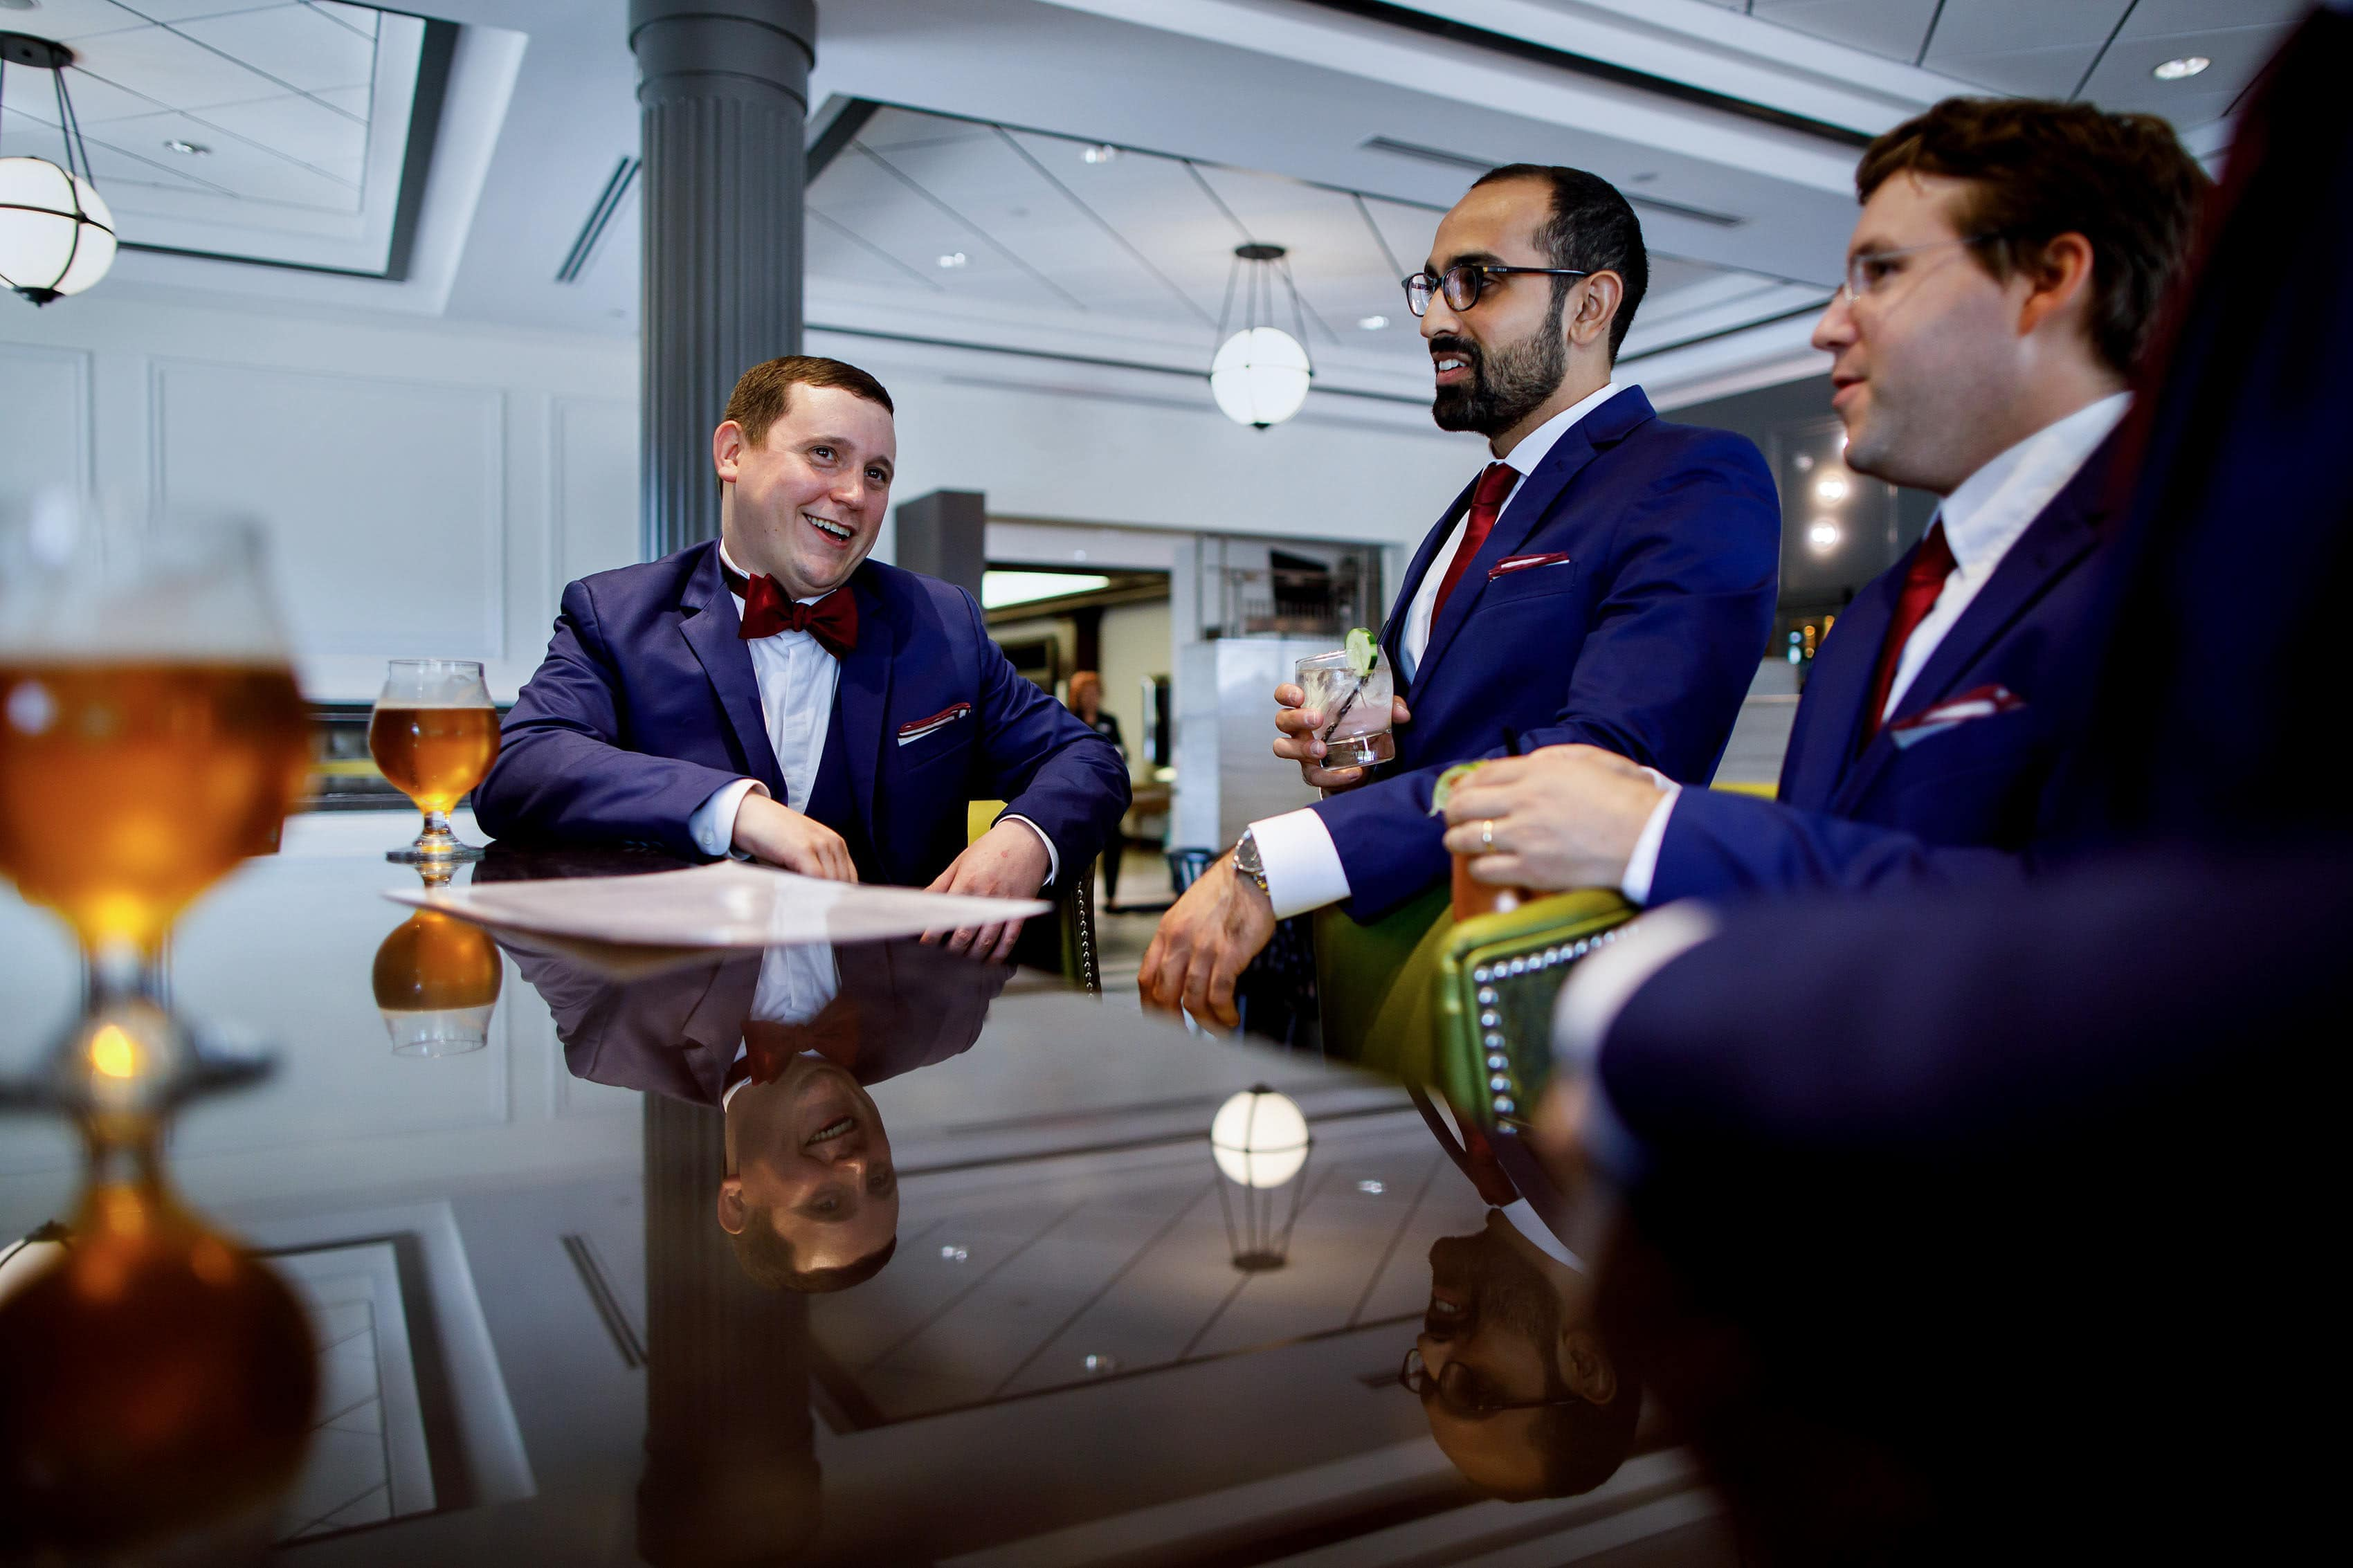 The groom shares a beer with groomsmen at La Banque hotel bar